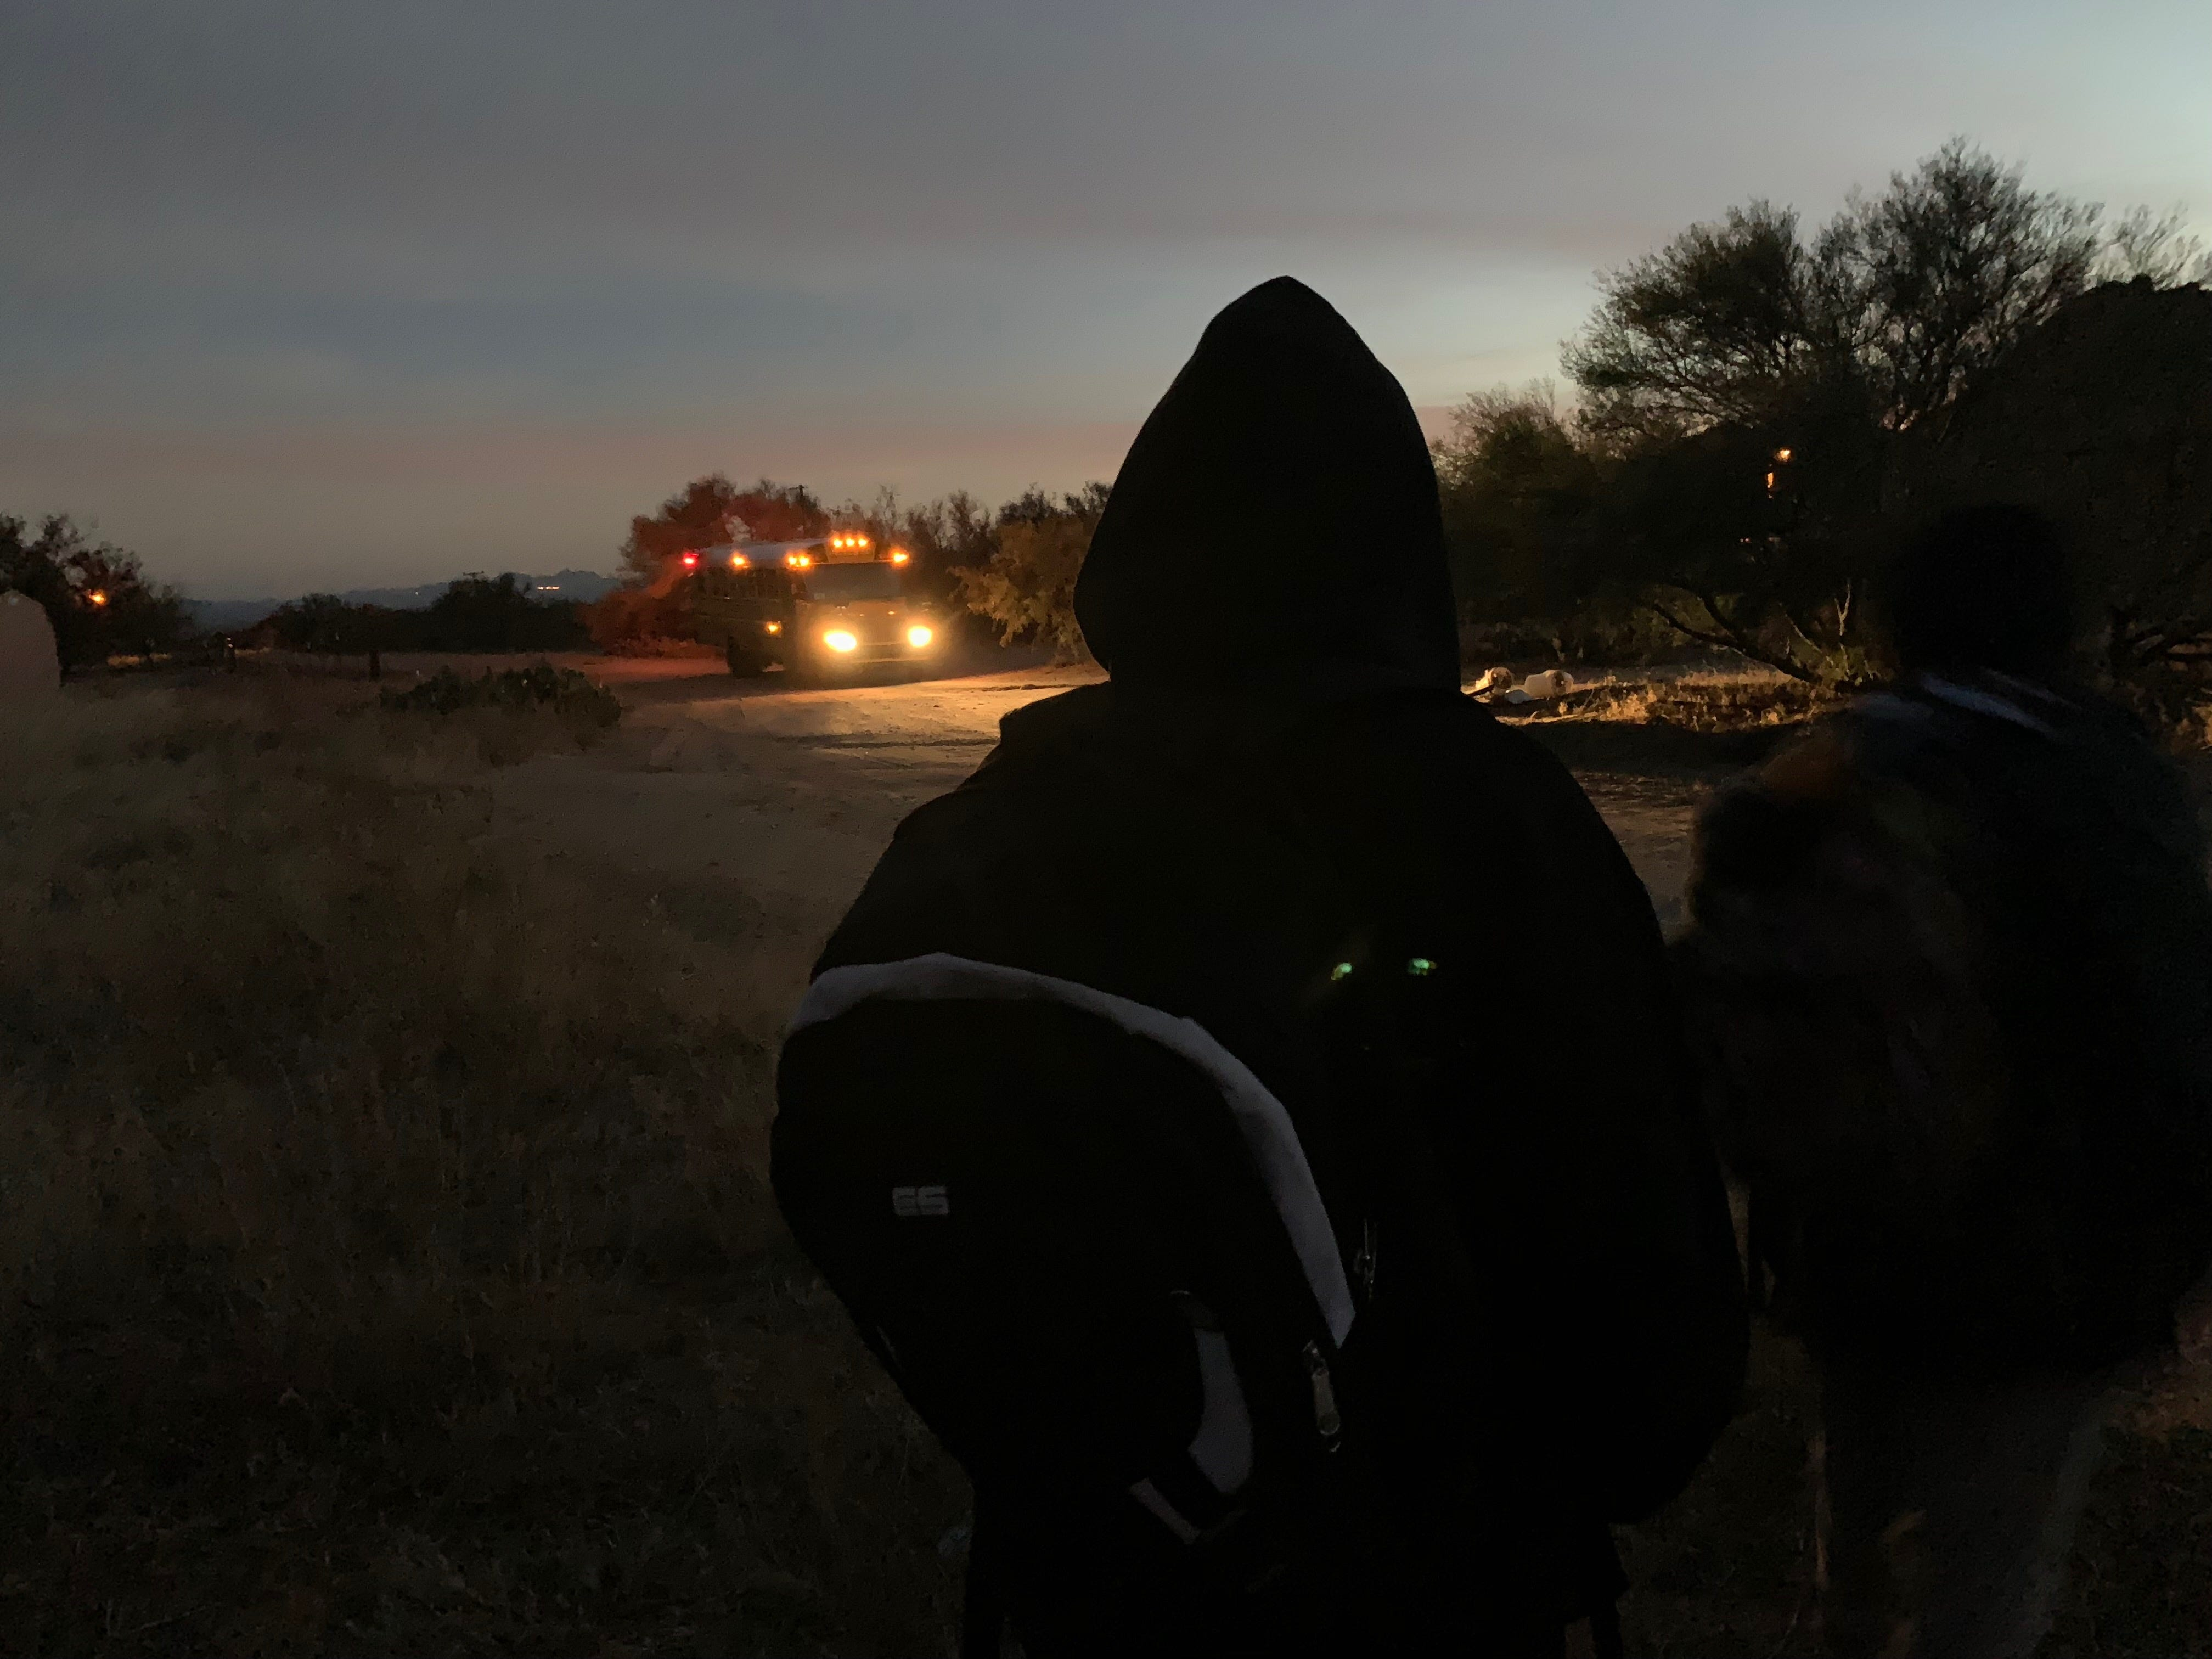 Two students from the Baboquivari Unified School District watch as their bus approaches in the early morning.